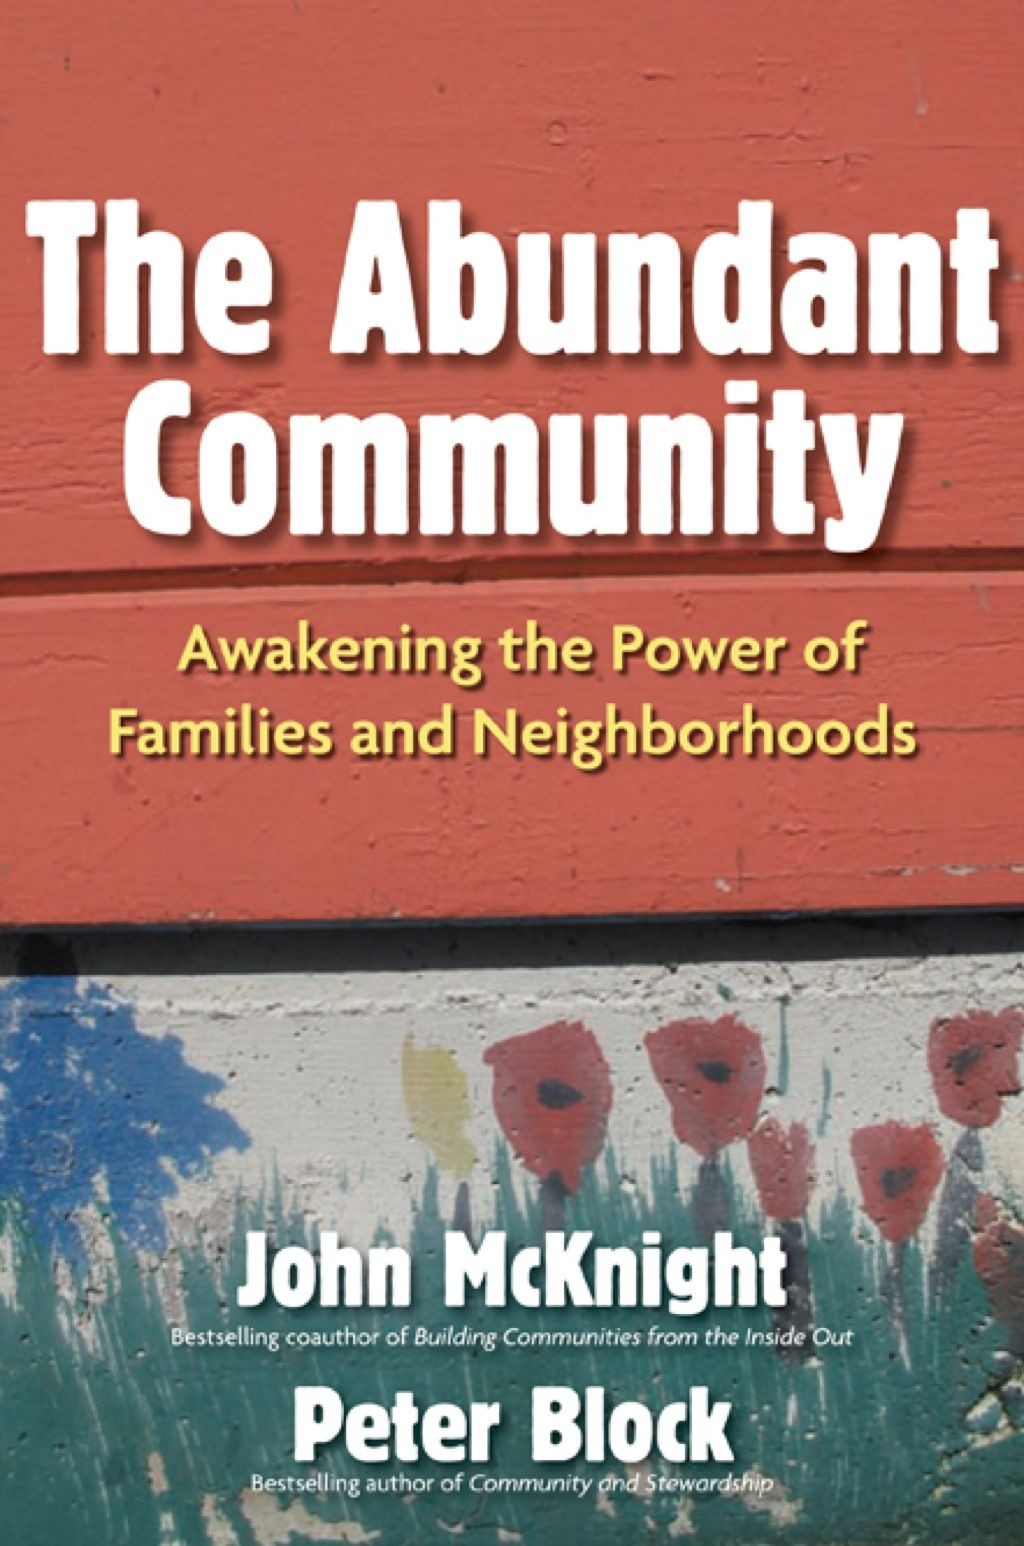 The Abundant Community Awakening the Power of Families